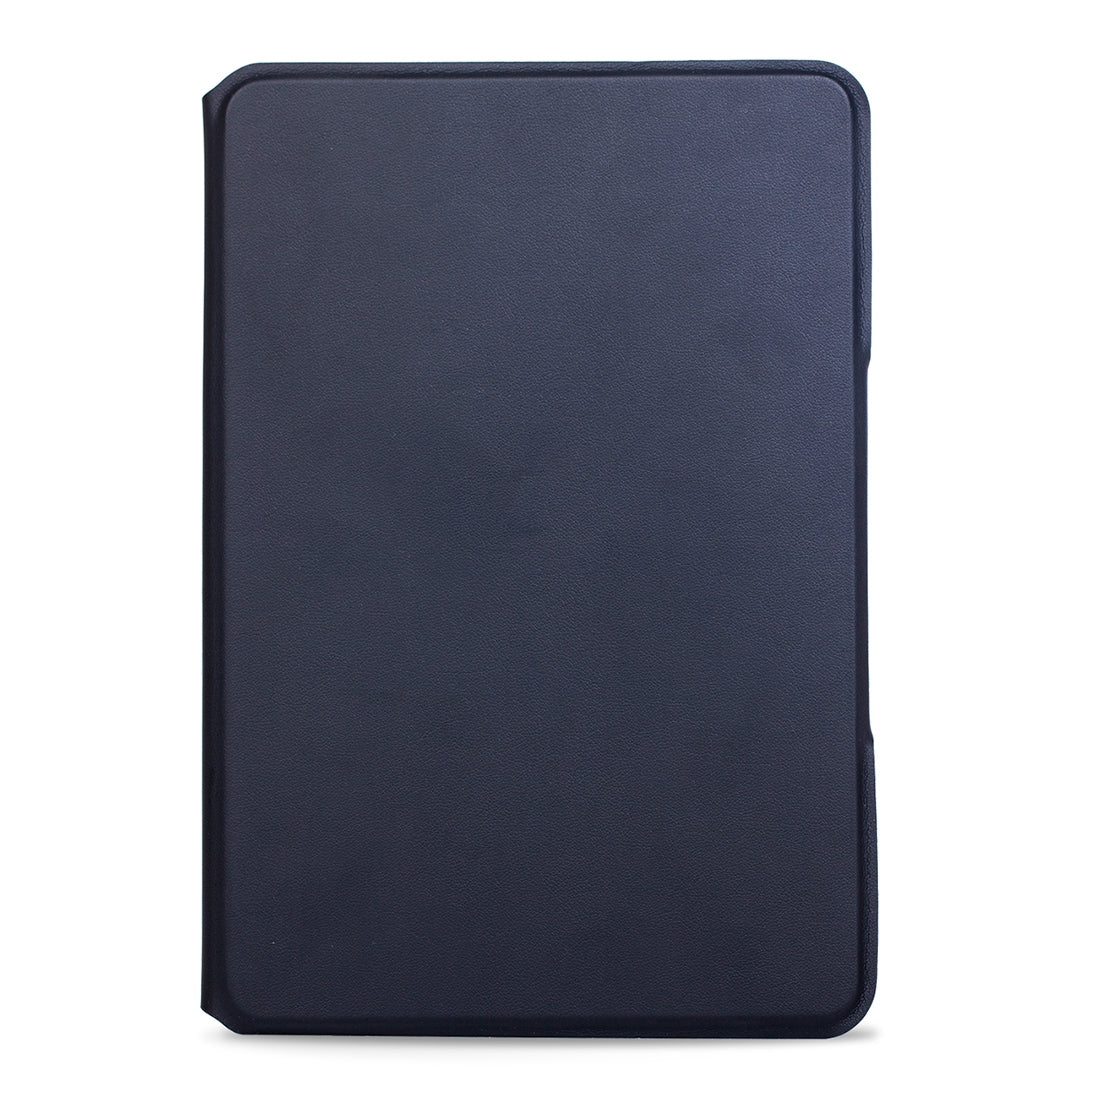 T1079 For iPad mini 3 / 2 / 1 Ultra-thin One-piece Plastic Bluetooth Keyboard Leather Cover with Stand Function (Black)